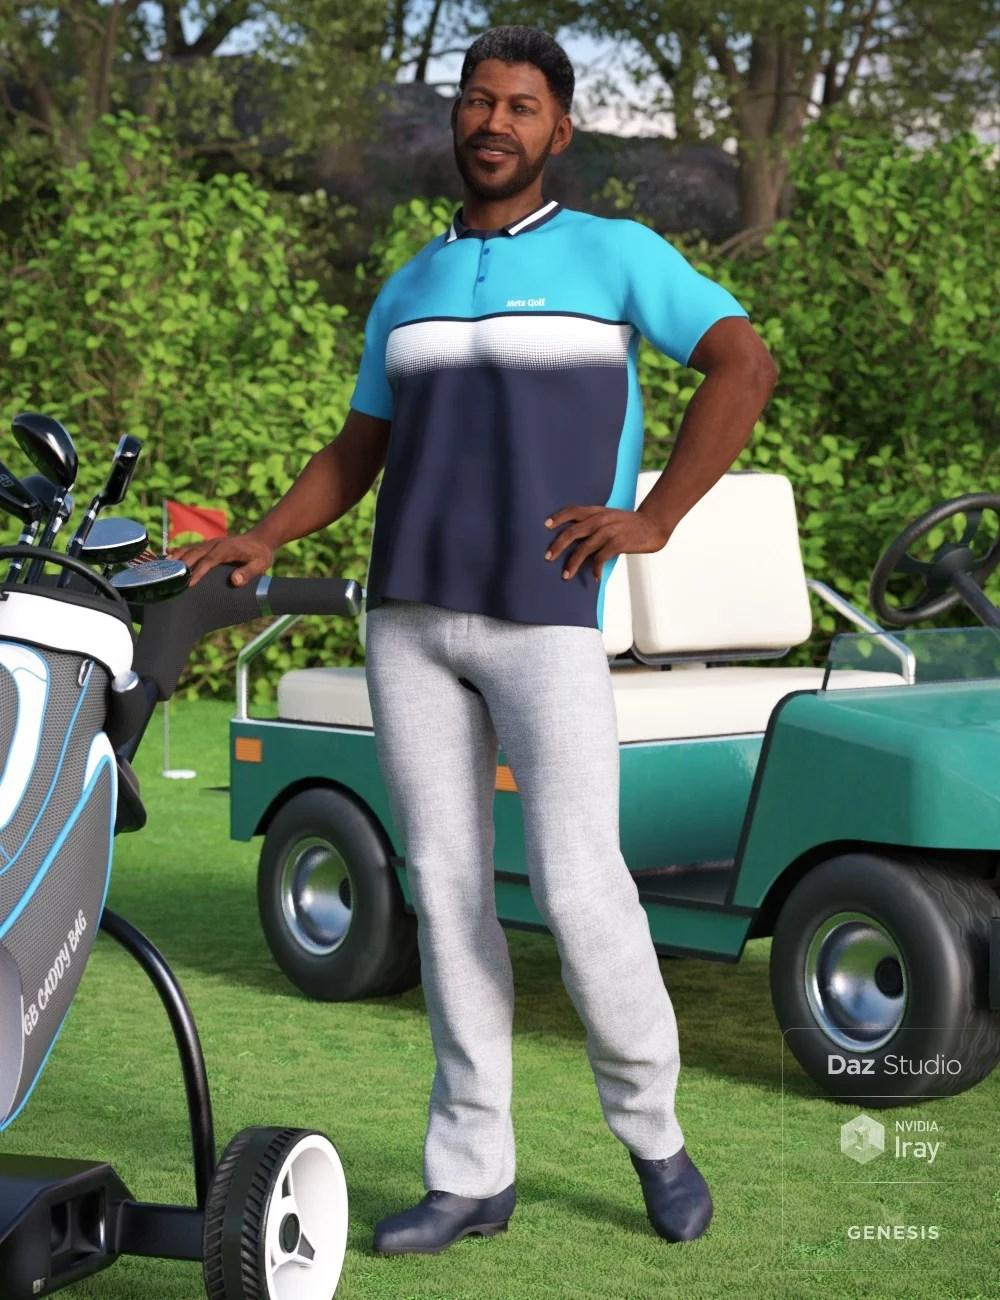 Casual Golf Outfit for Genesis 8 Male(s)